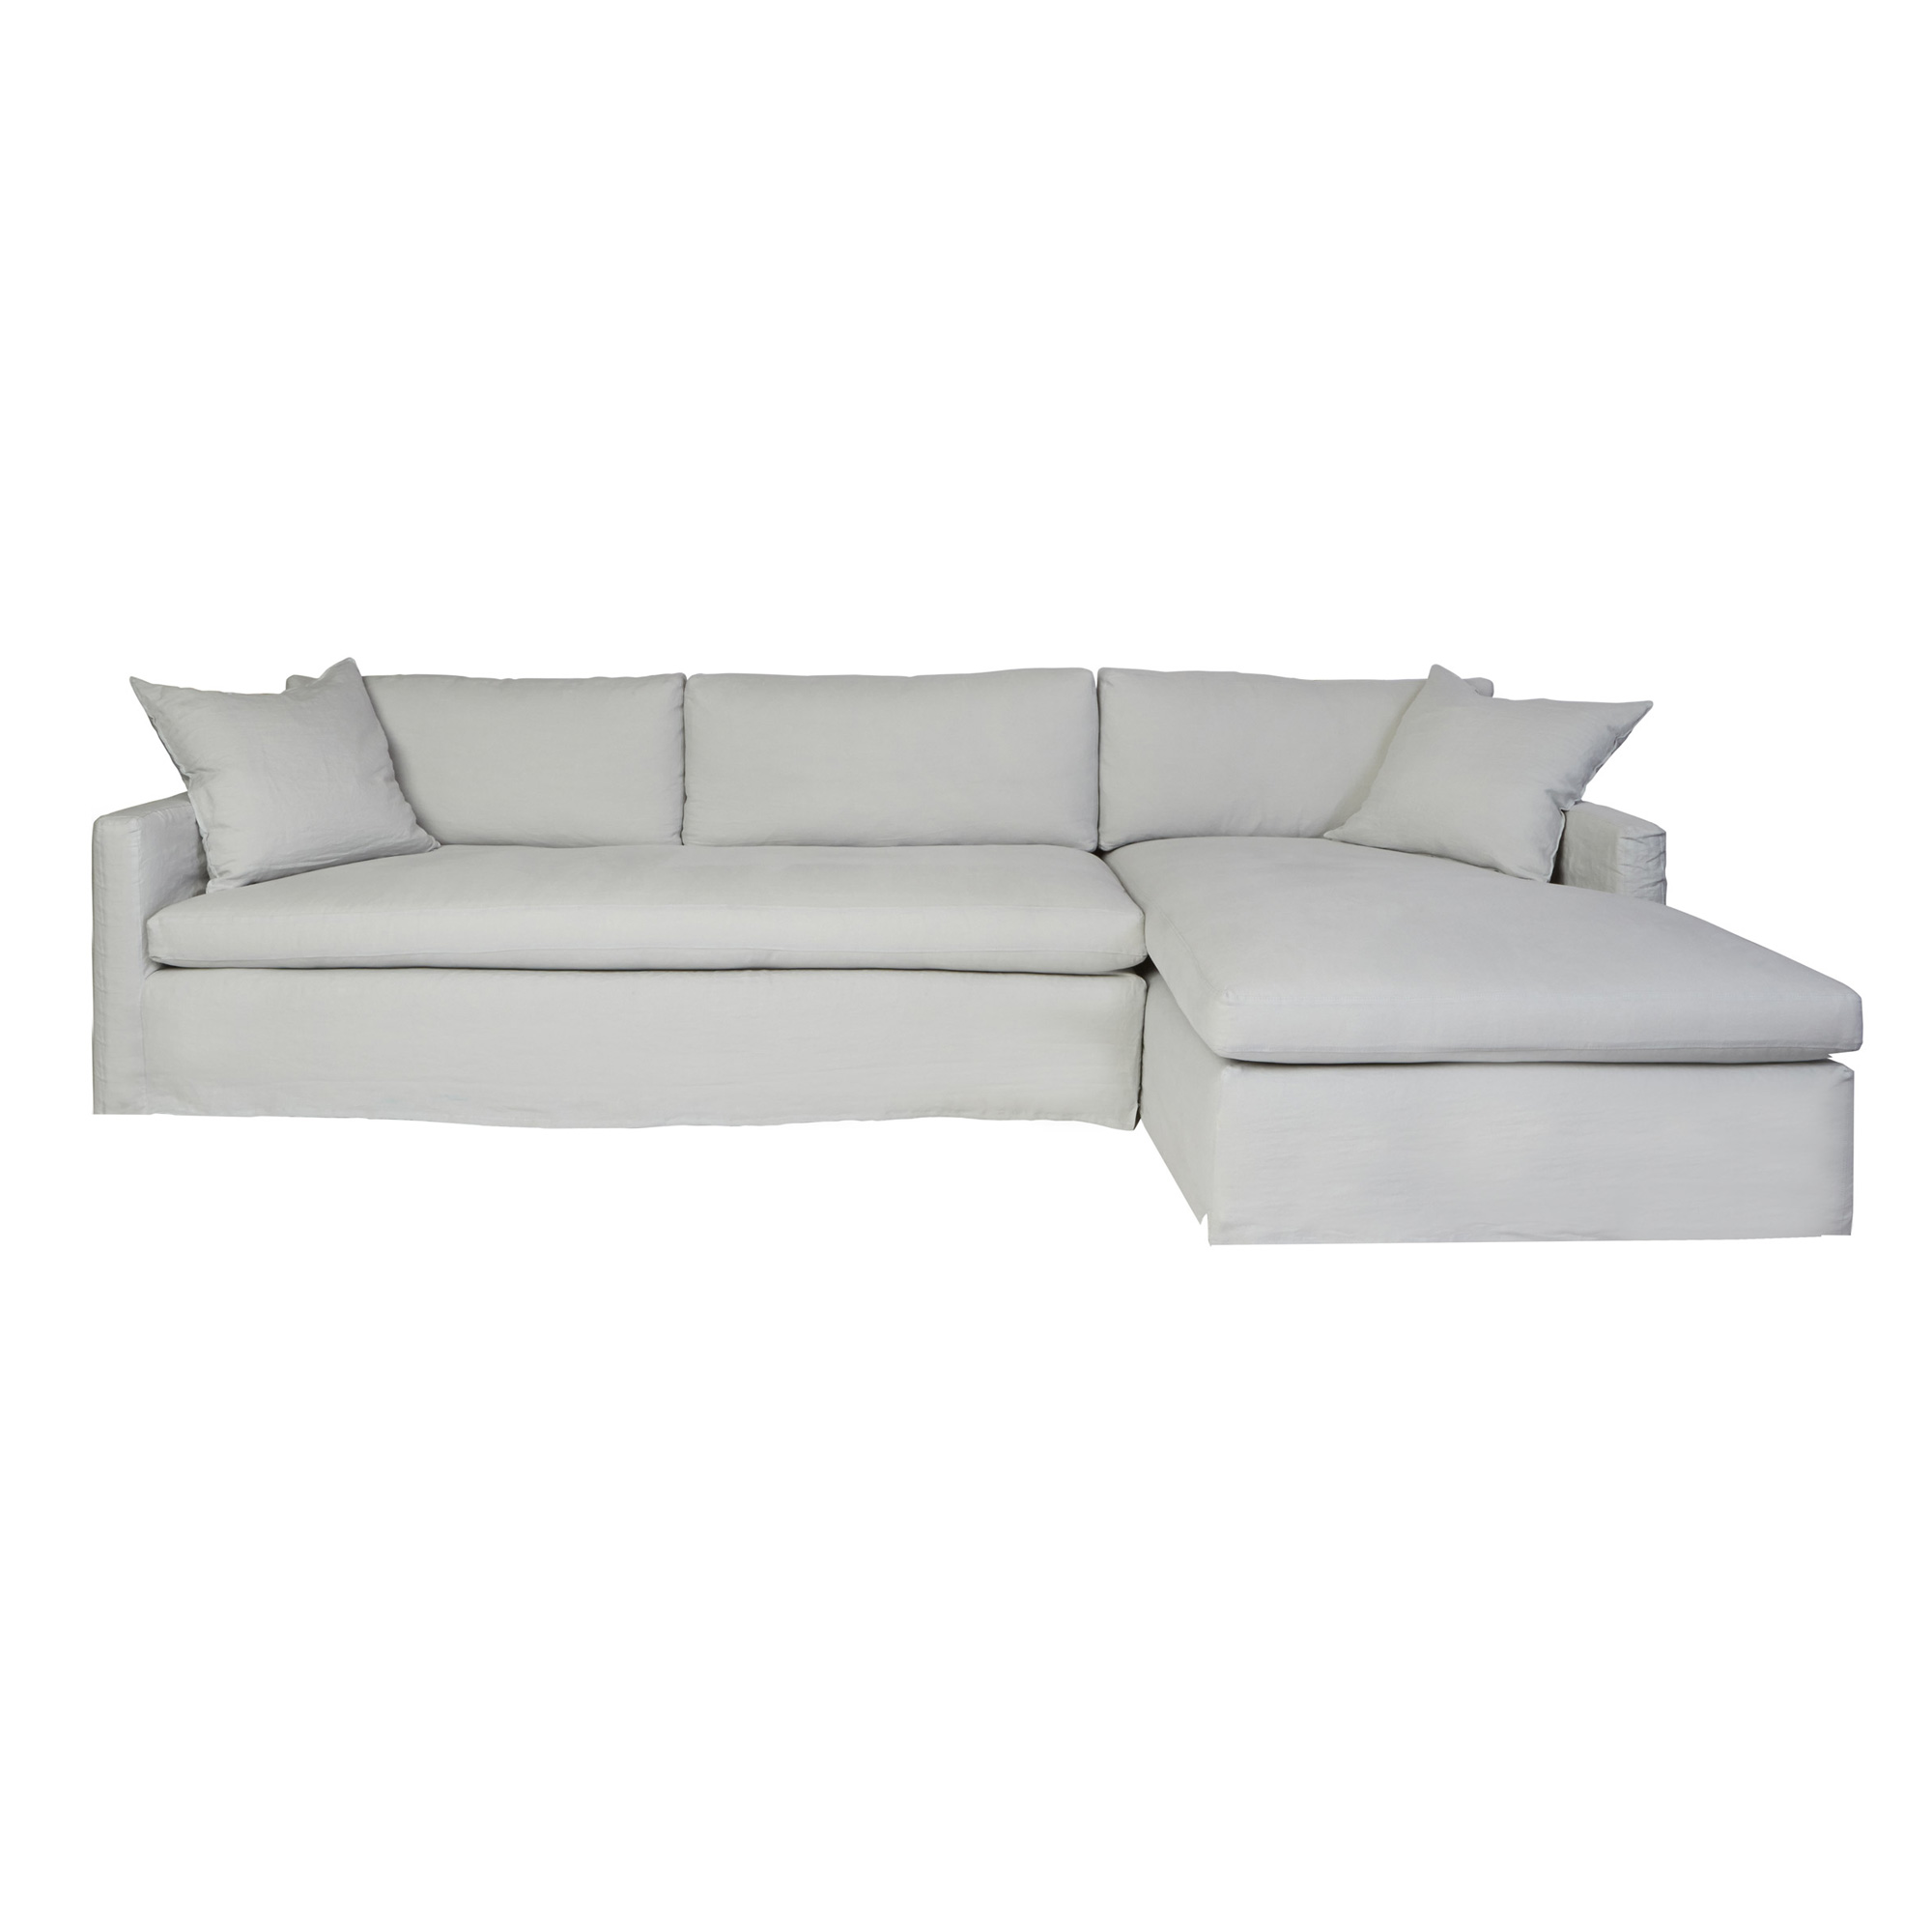 Louis_2-piece_Sectional_Cisco_Brothers.jpg